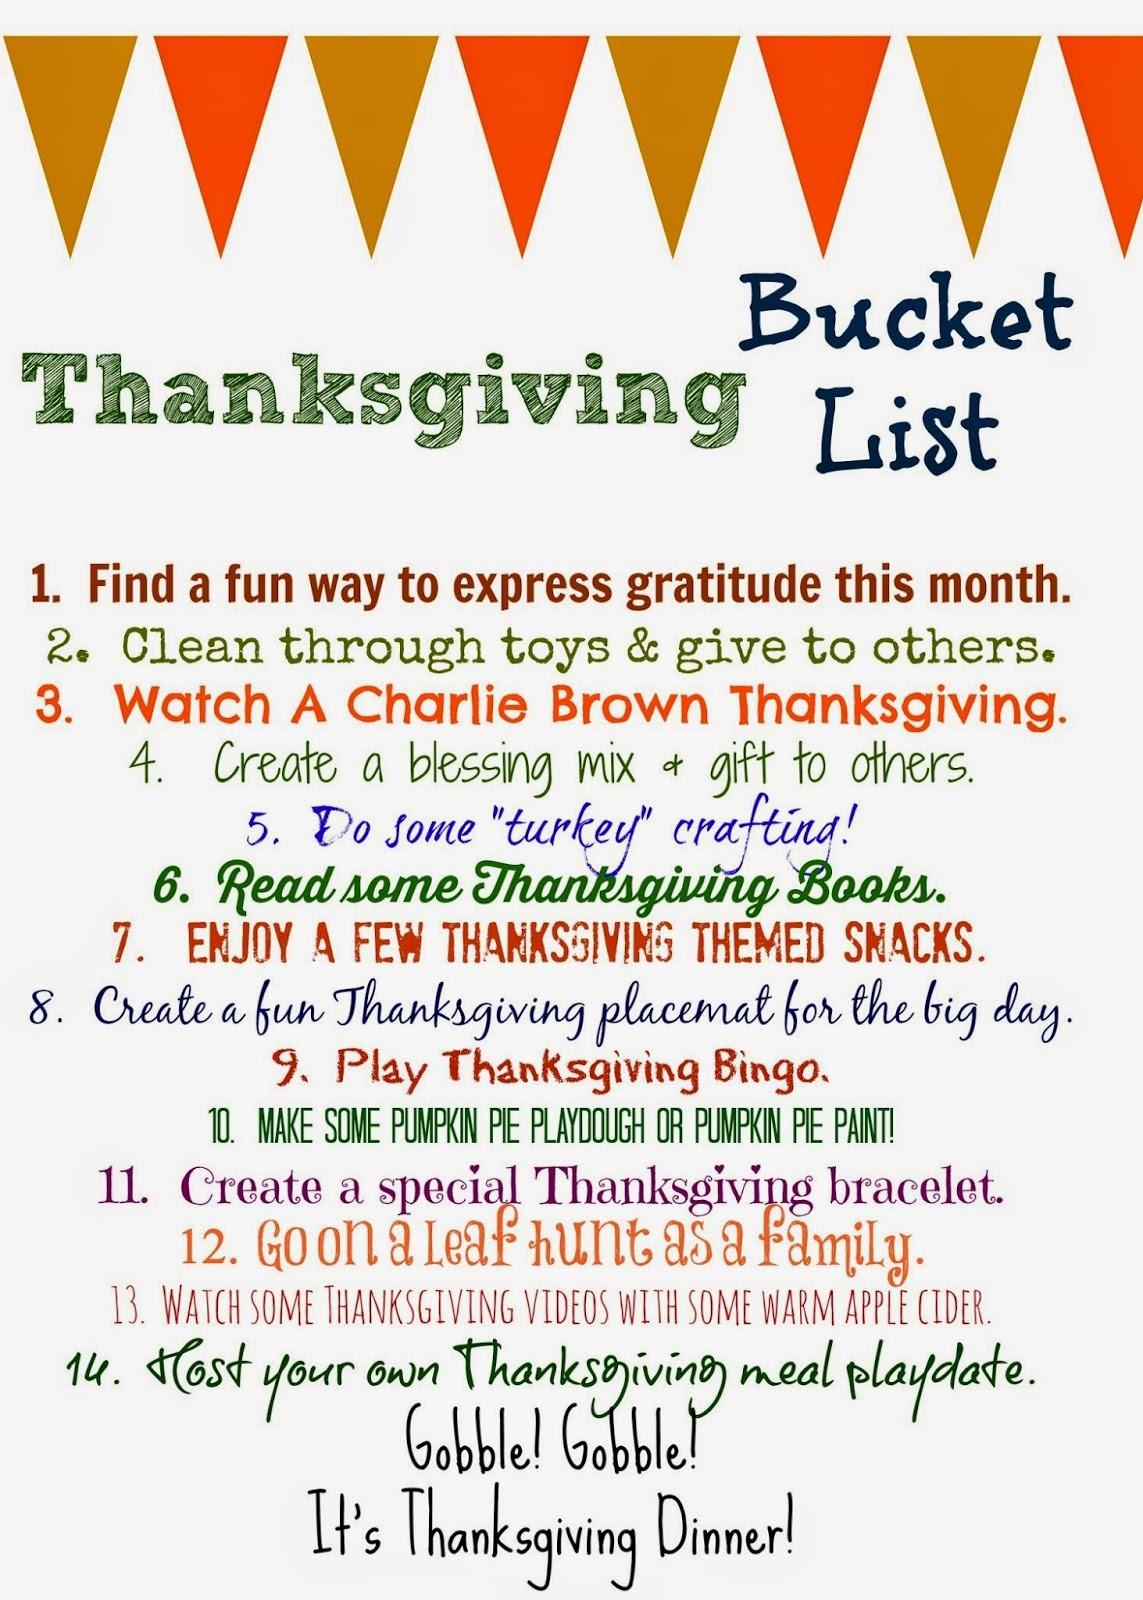 Thanksgiving Bucket List Printable Chirping Moms